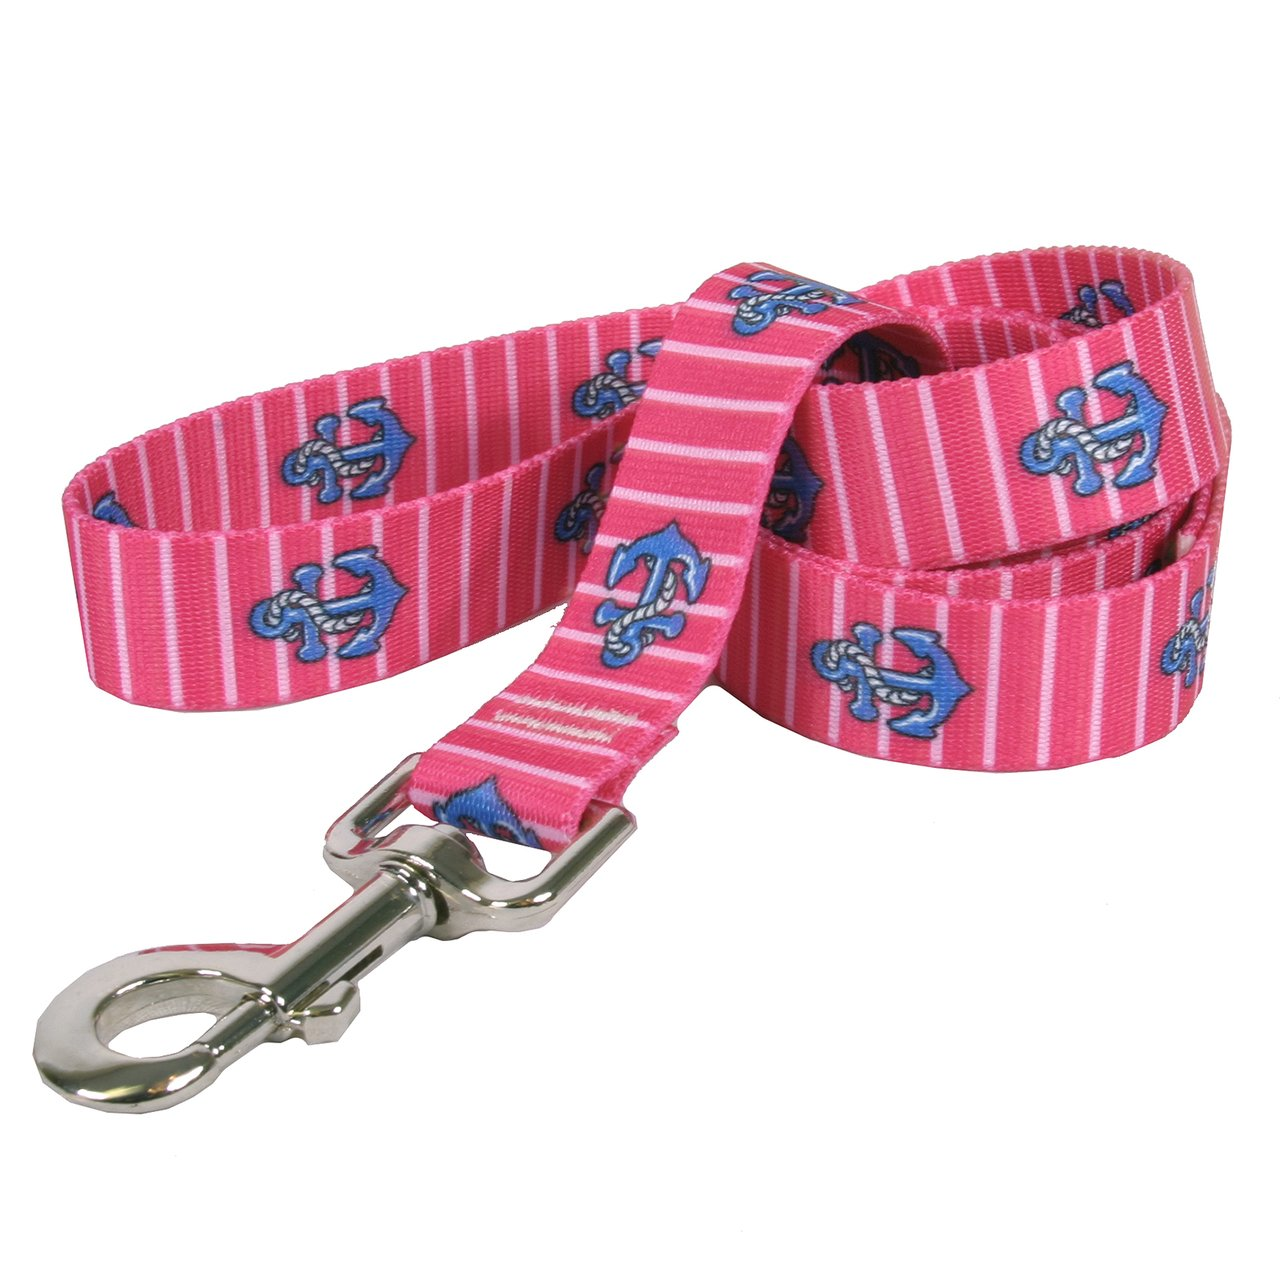 Yellow Dog Design Anchors On Pink Stripes Dog Leash 3/4'' Wide and 5' (60'') Long, Small/Medium by Yellow Dog Design